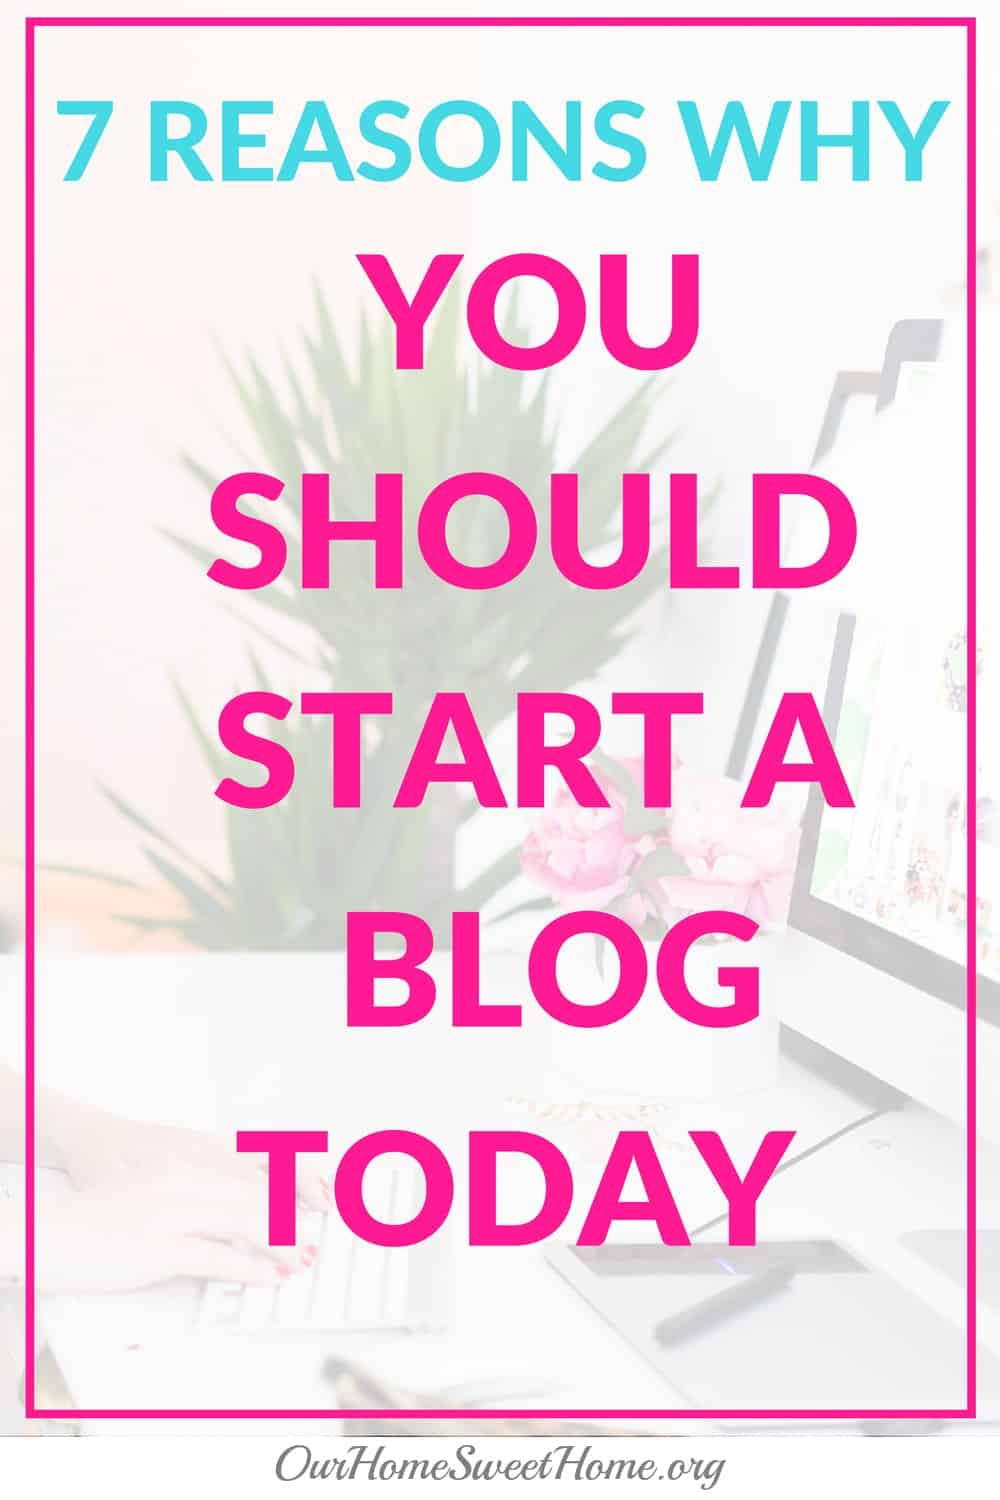 7 Reasons Why Should Start a Blog